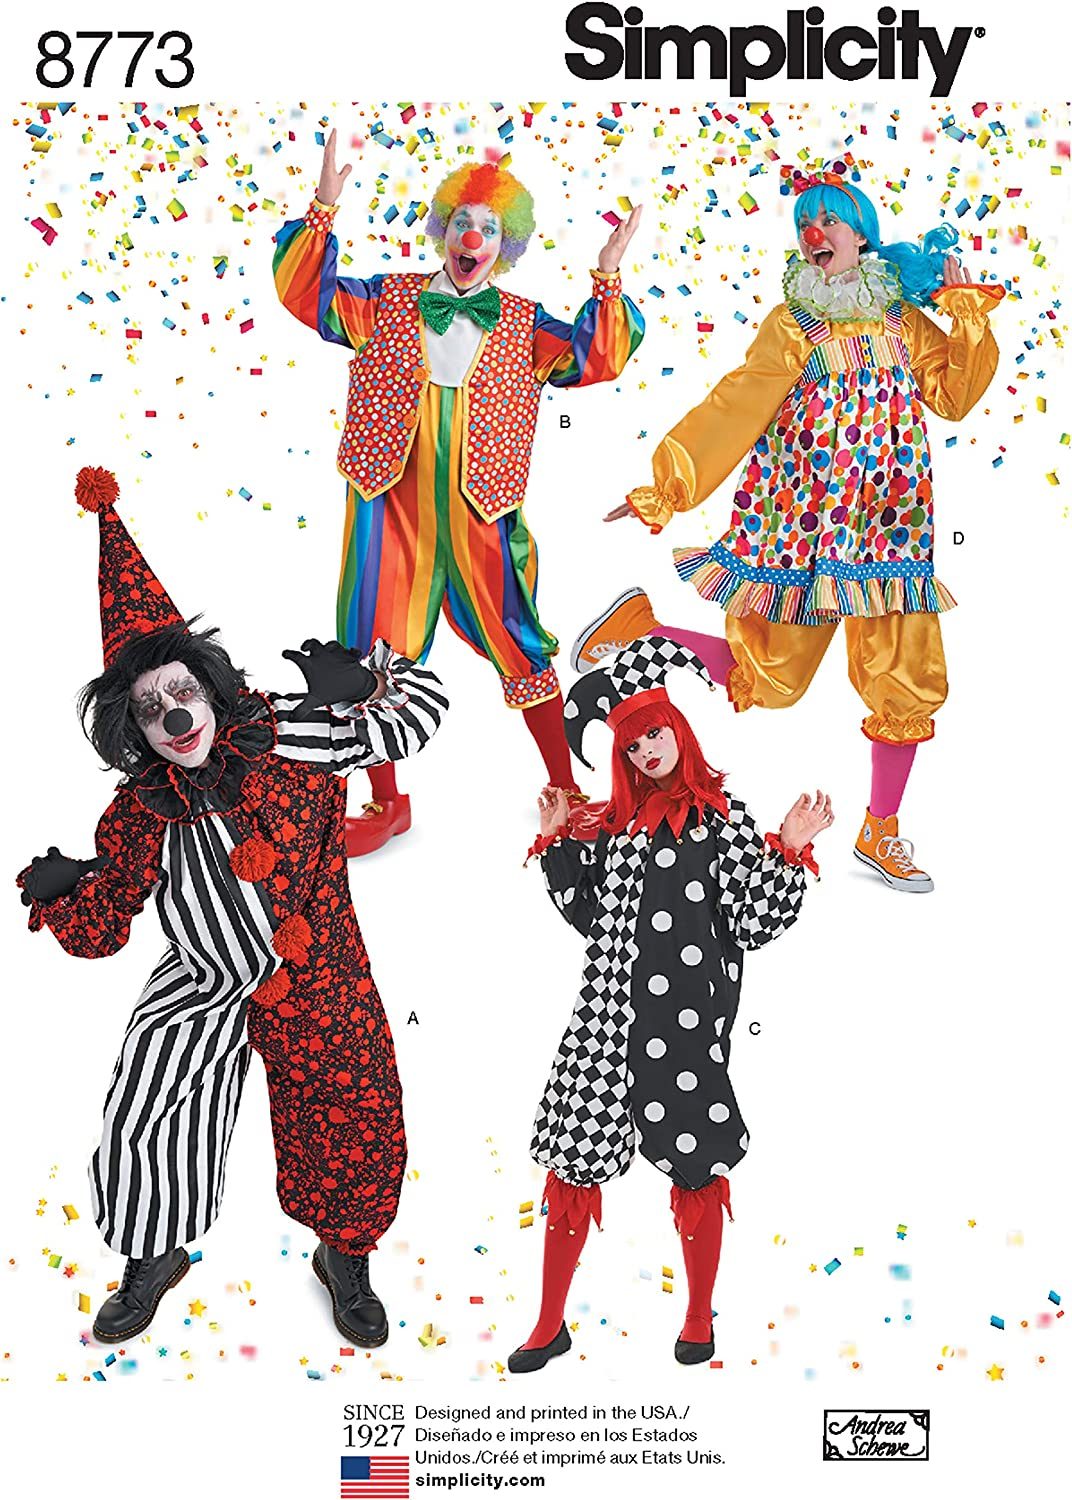 Simplicity 8773 Adult Clown Costume Sewing Pattern, Sizes XS-XL